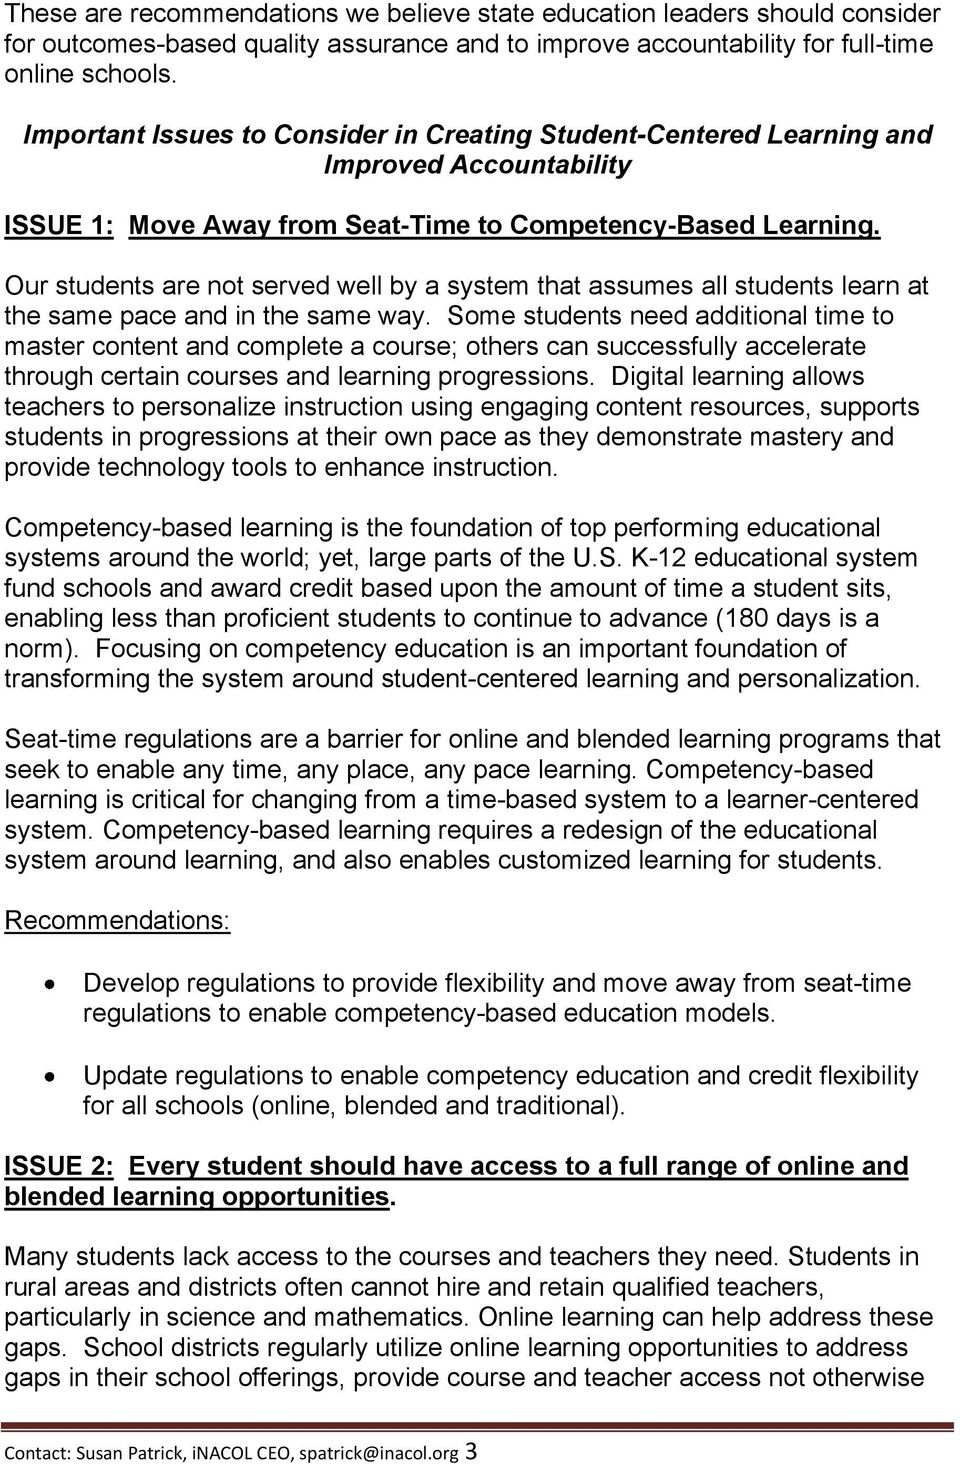 Our students are not served well by a system that assumes all students learn at the same pace and in the same way.